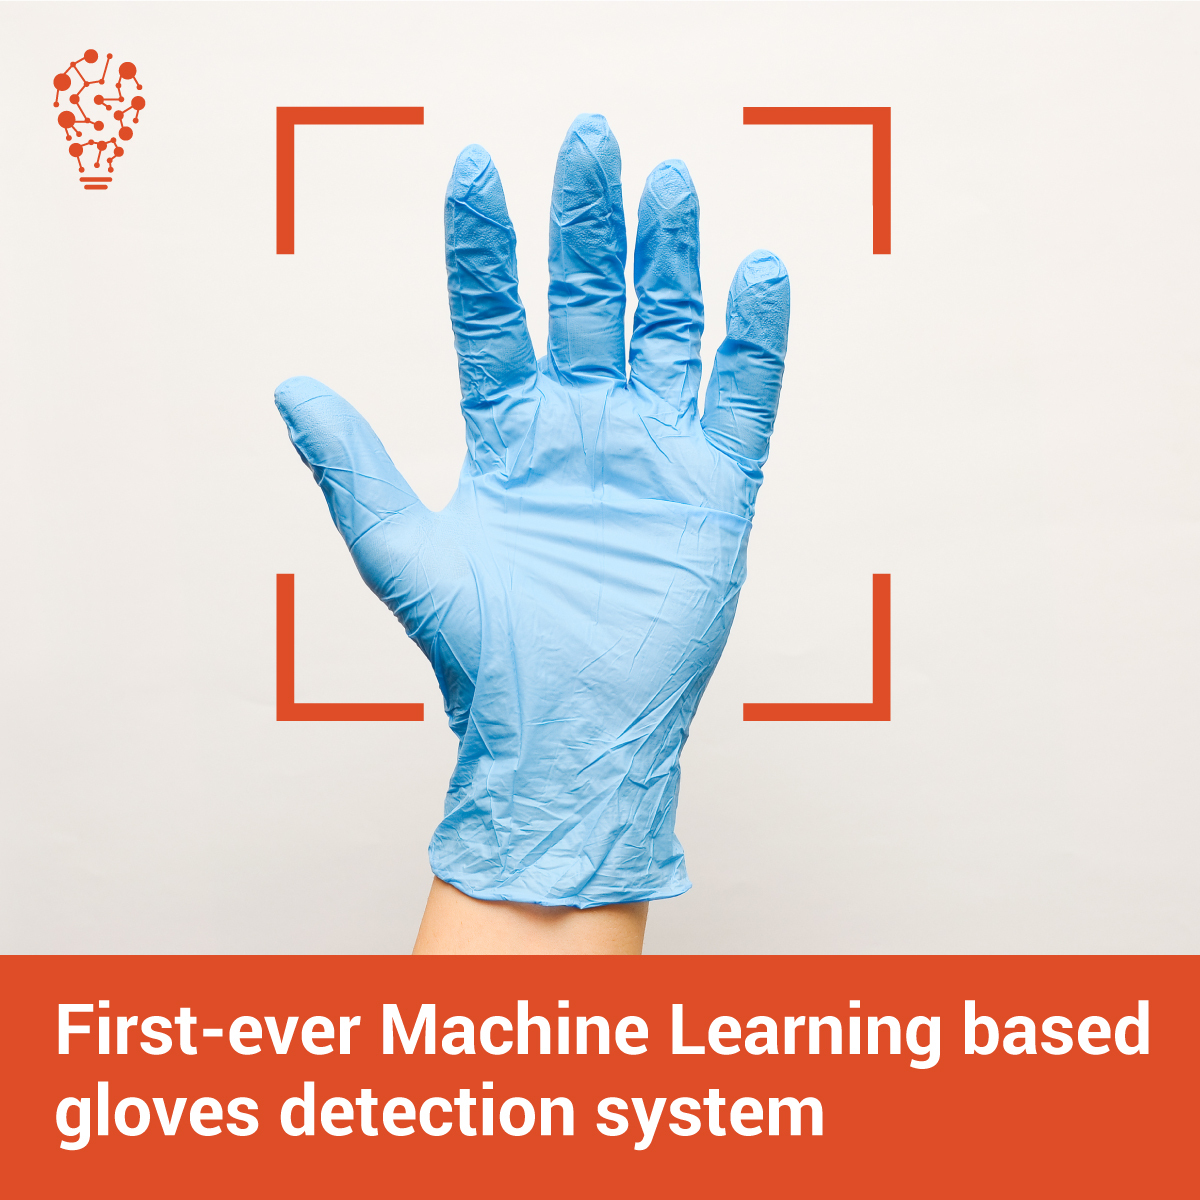 First-ever Machine Learning based gloves detection system